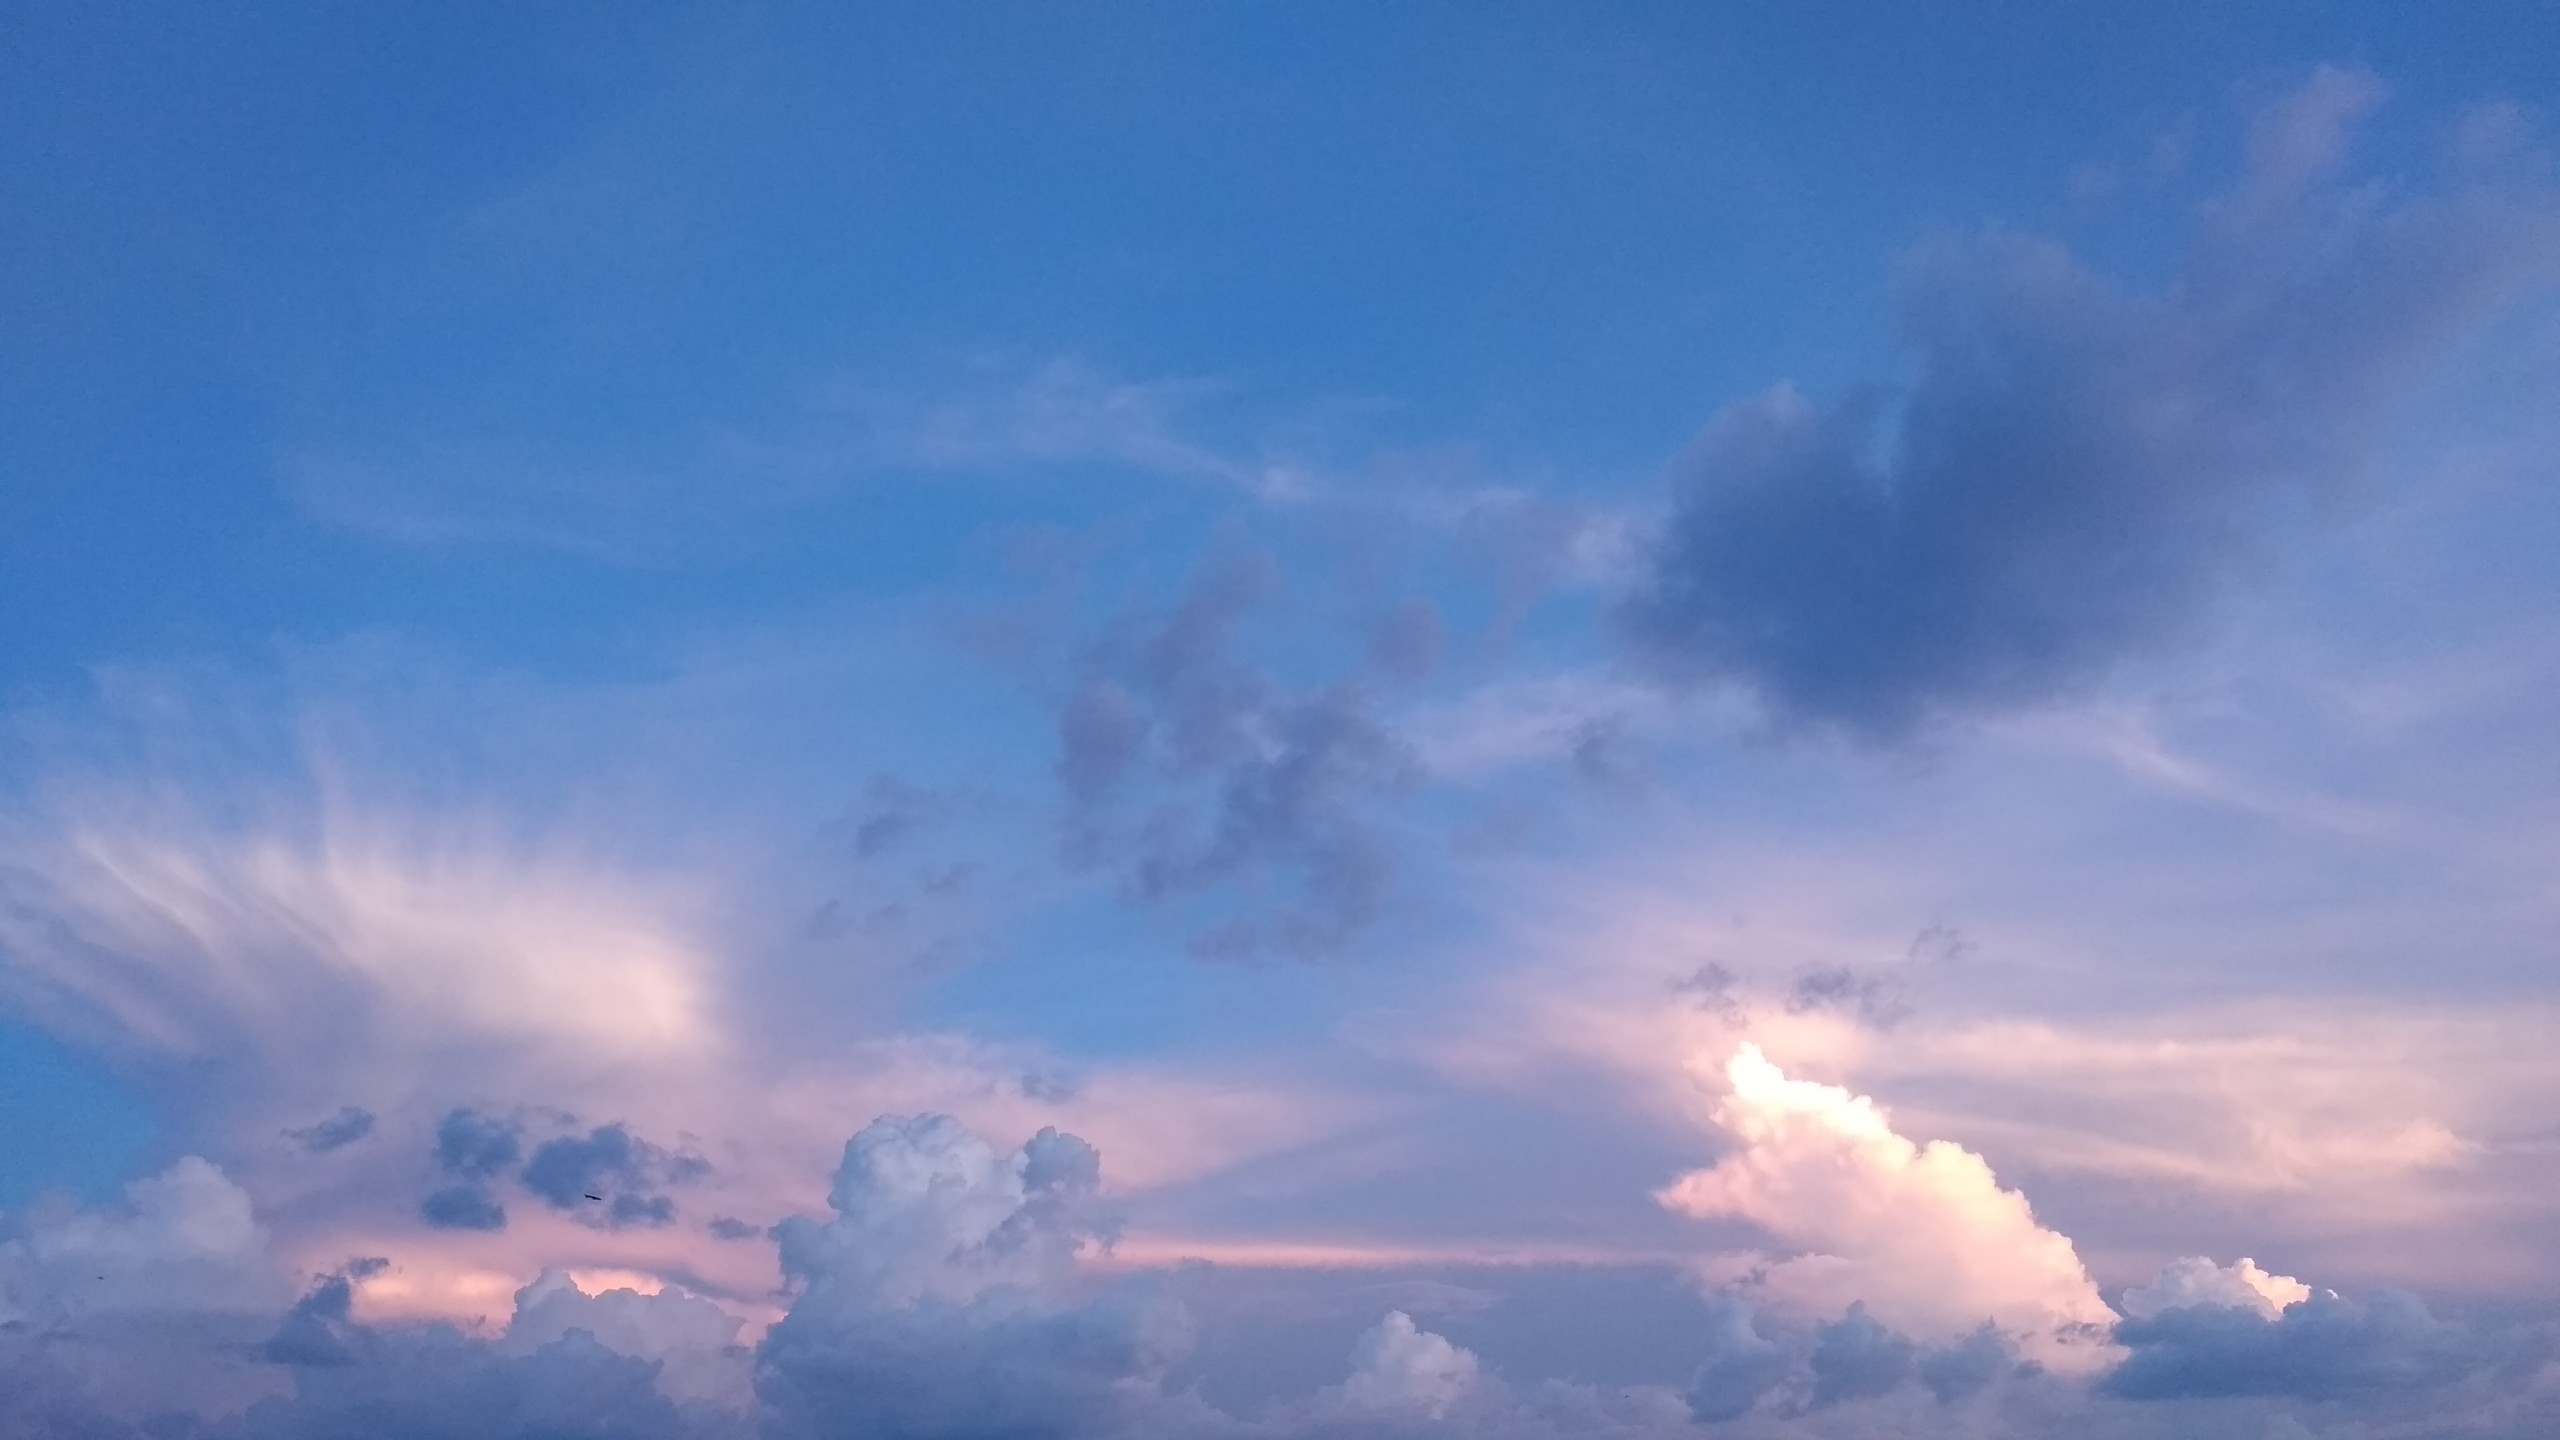 Sky in the evening